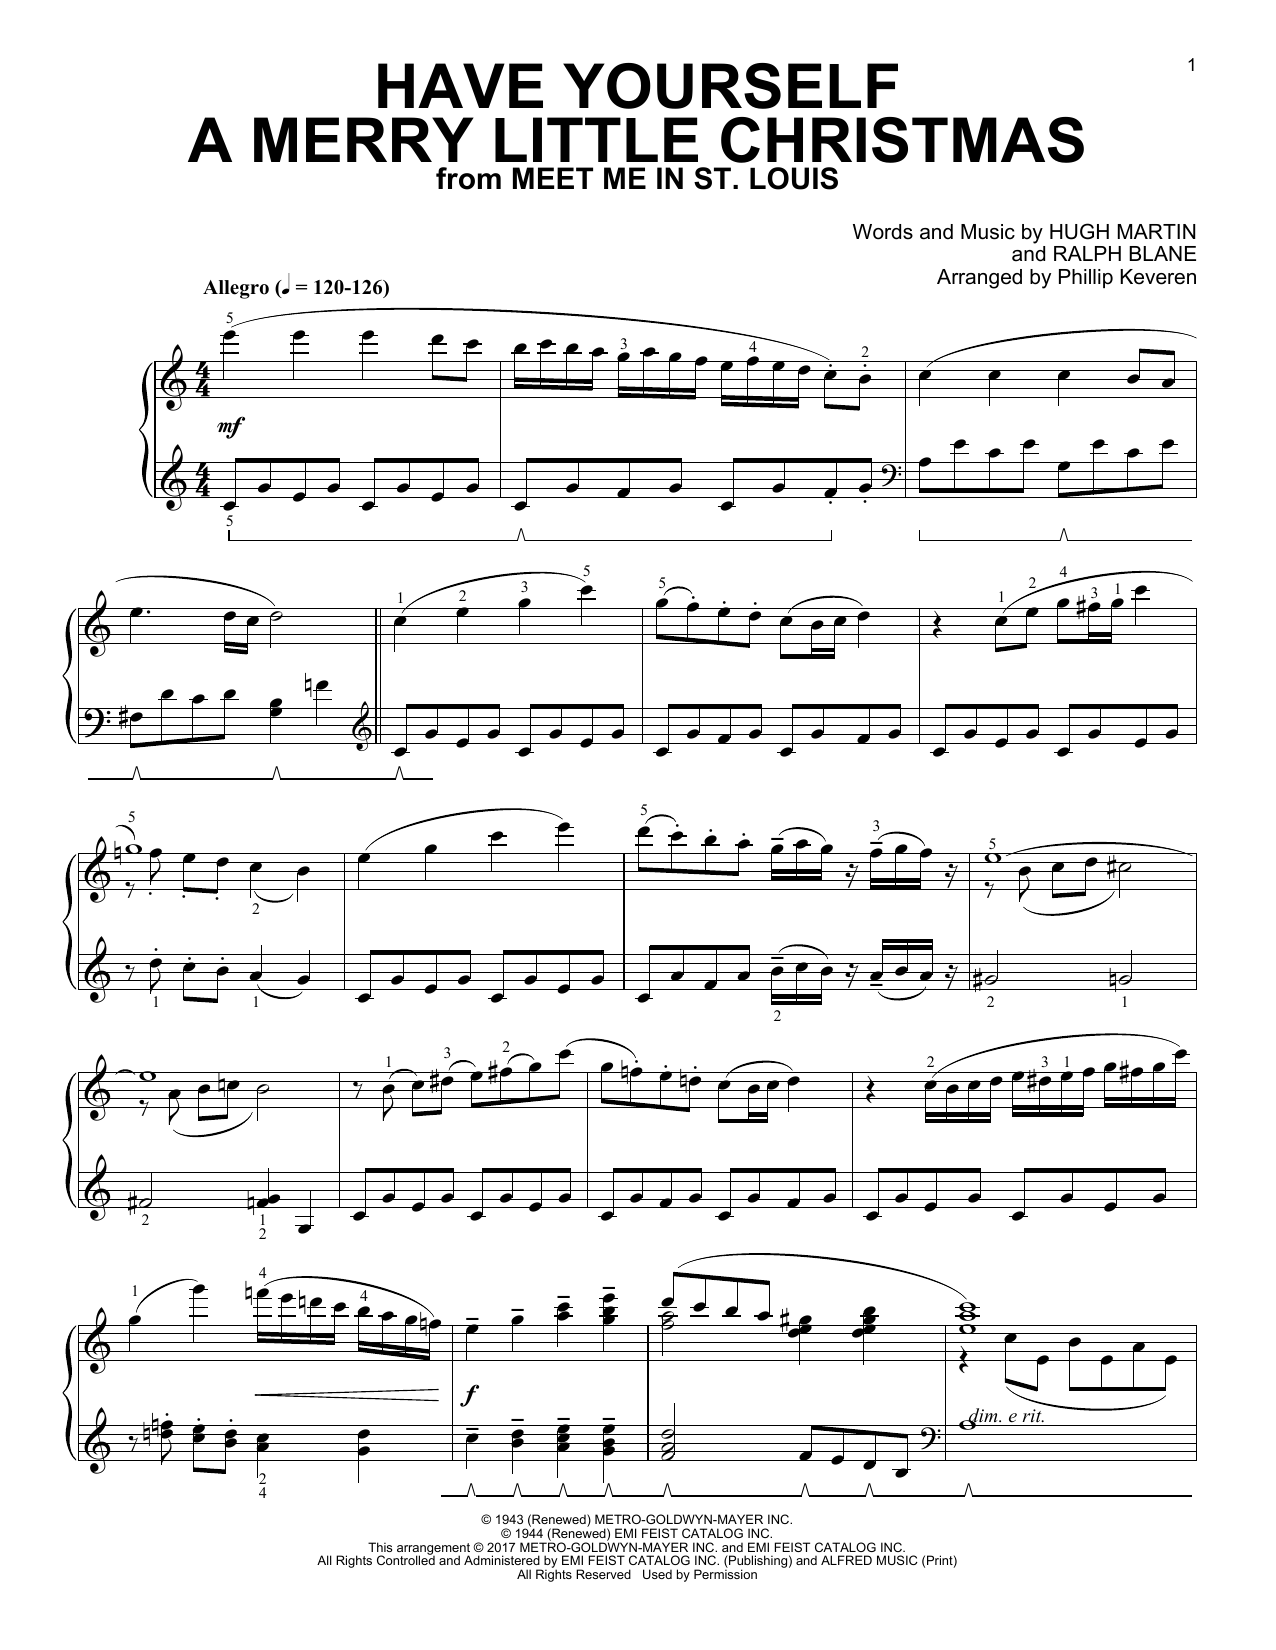 Have Yourself A Merry Little Christmas Sheet Music Pdf.Have Yourself A Merry Little Christmas Piano Solo Sheet Music